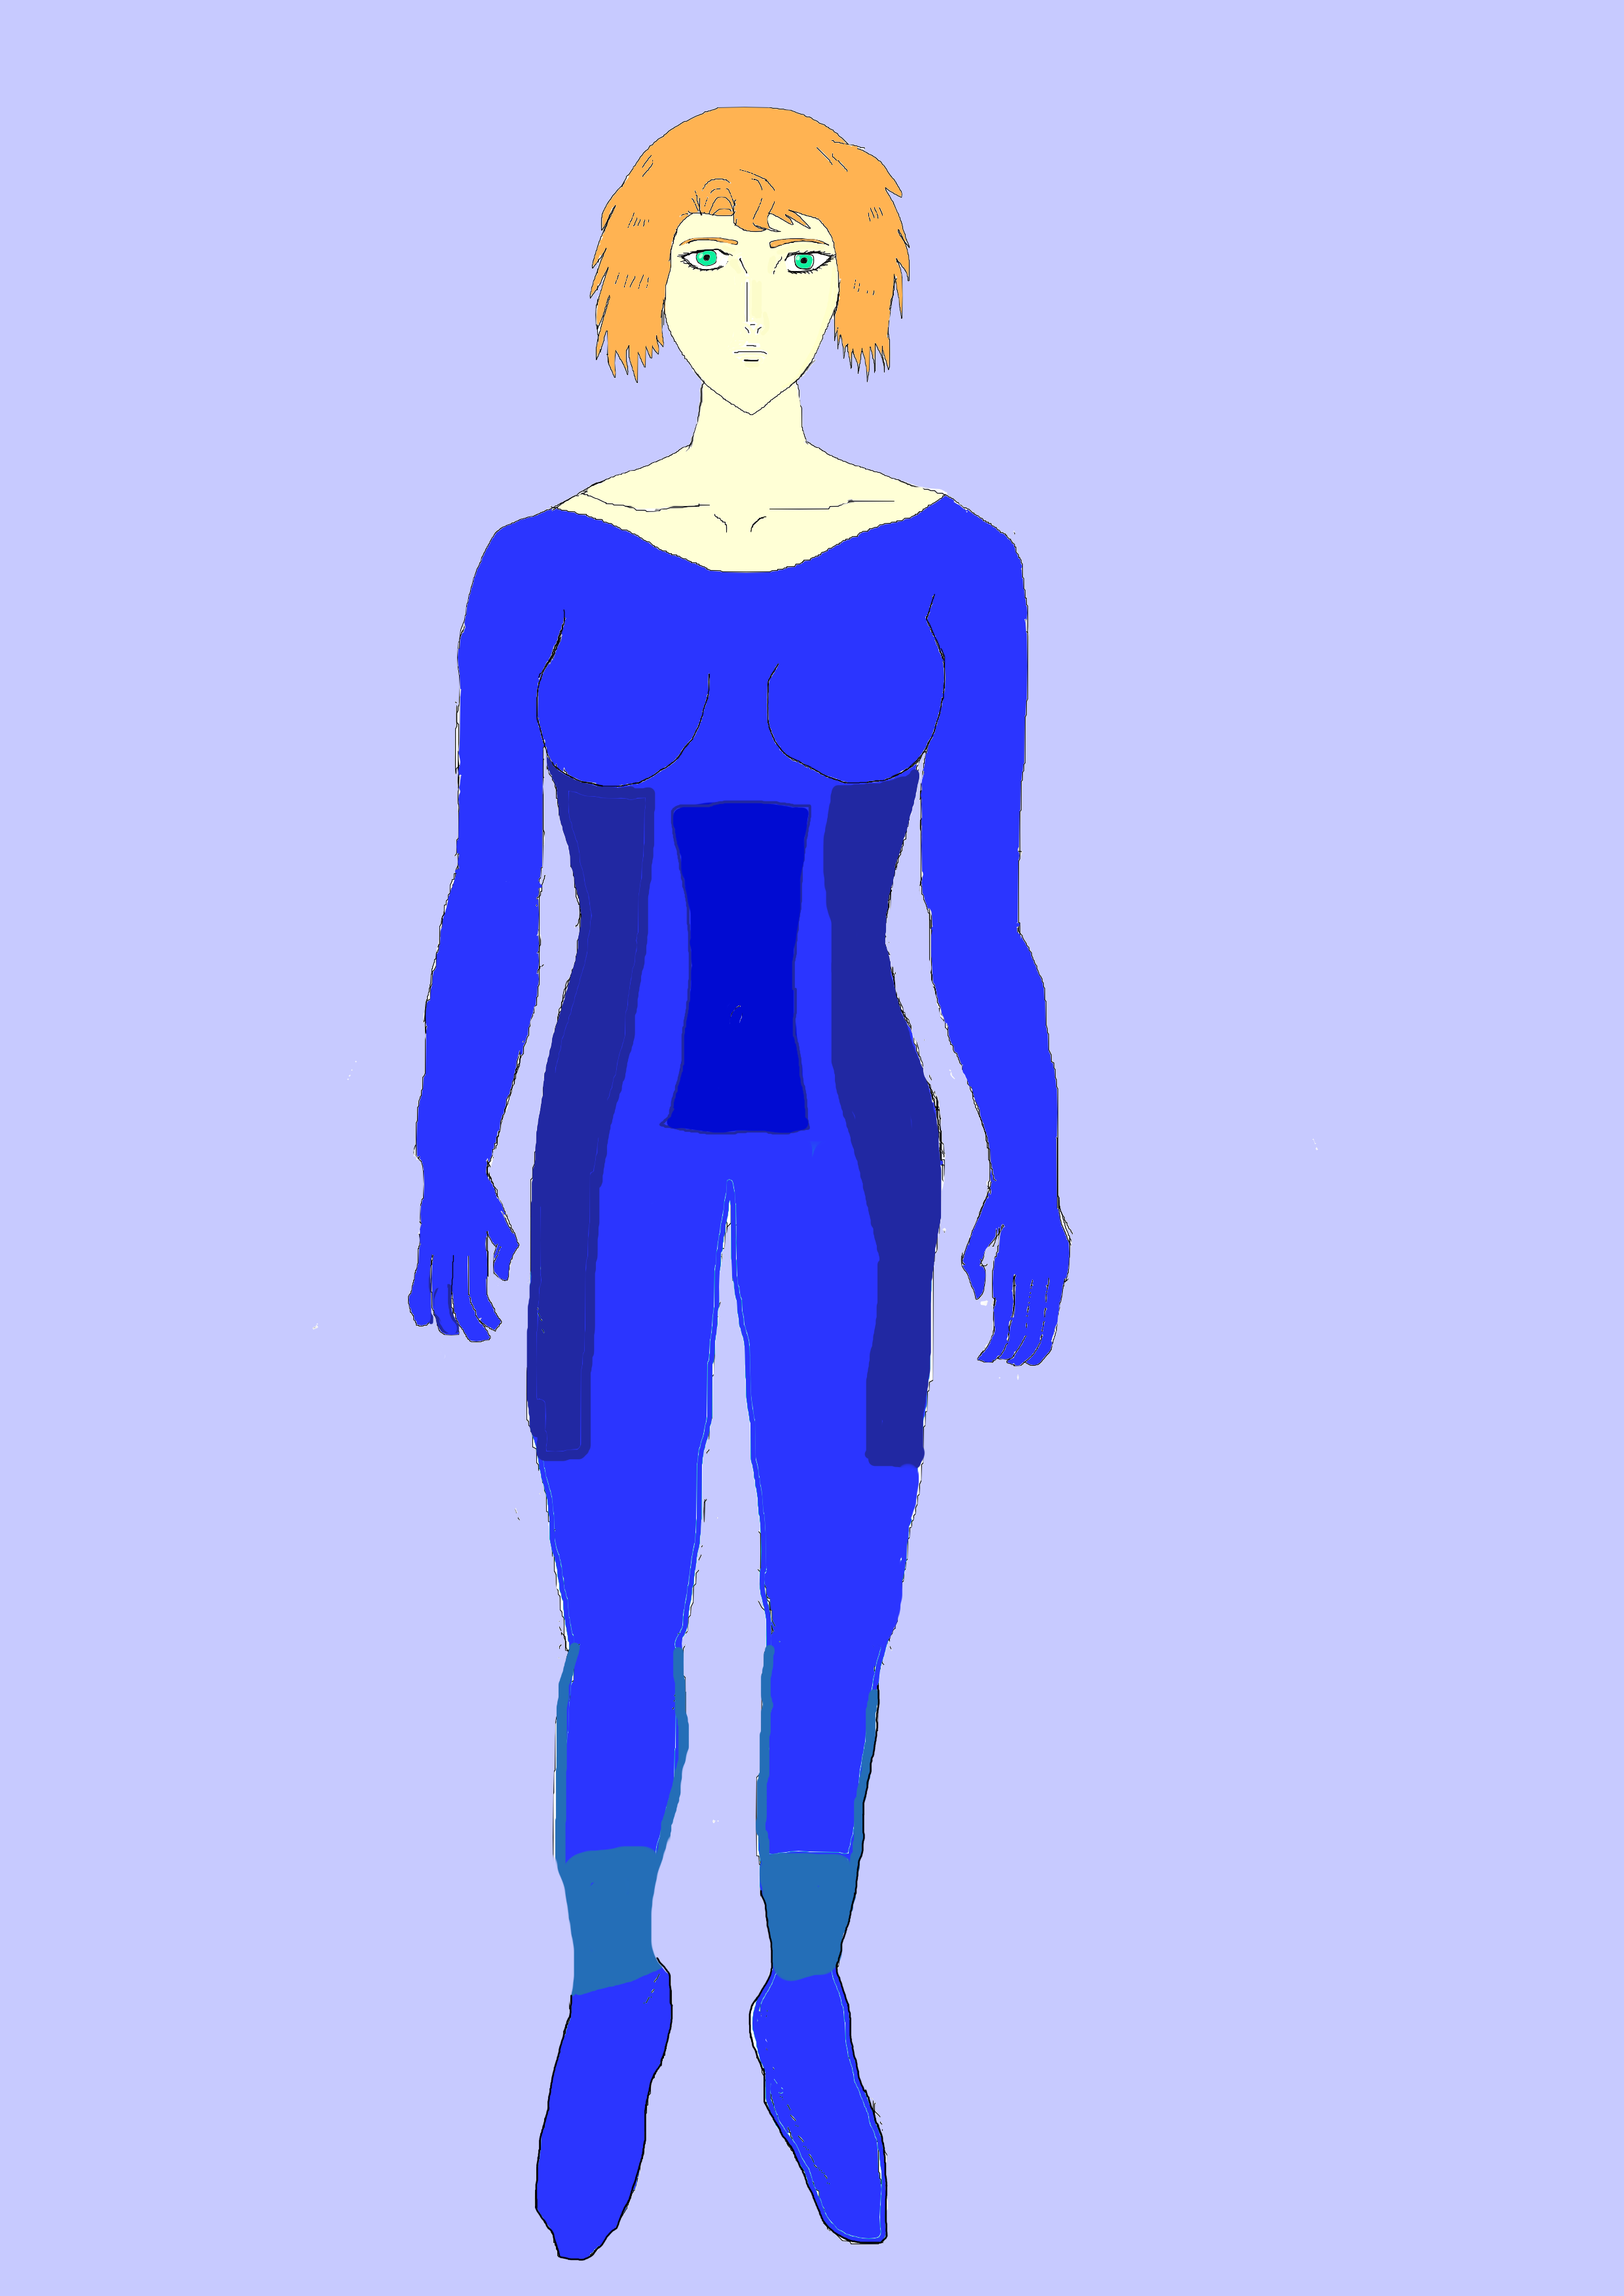 Anime Girl in Blue Suit